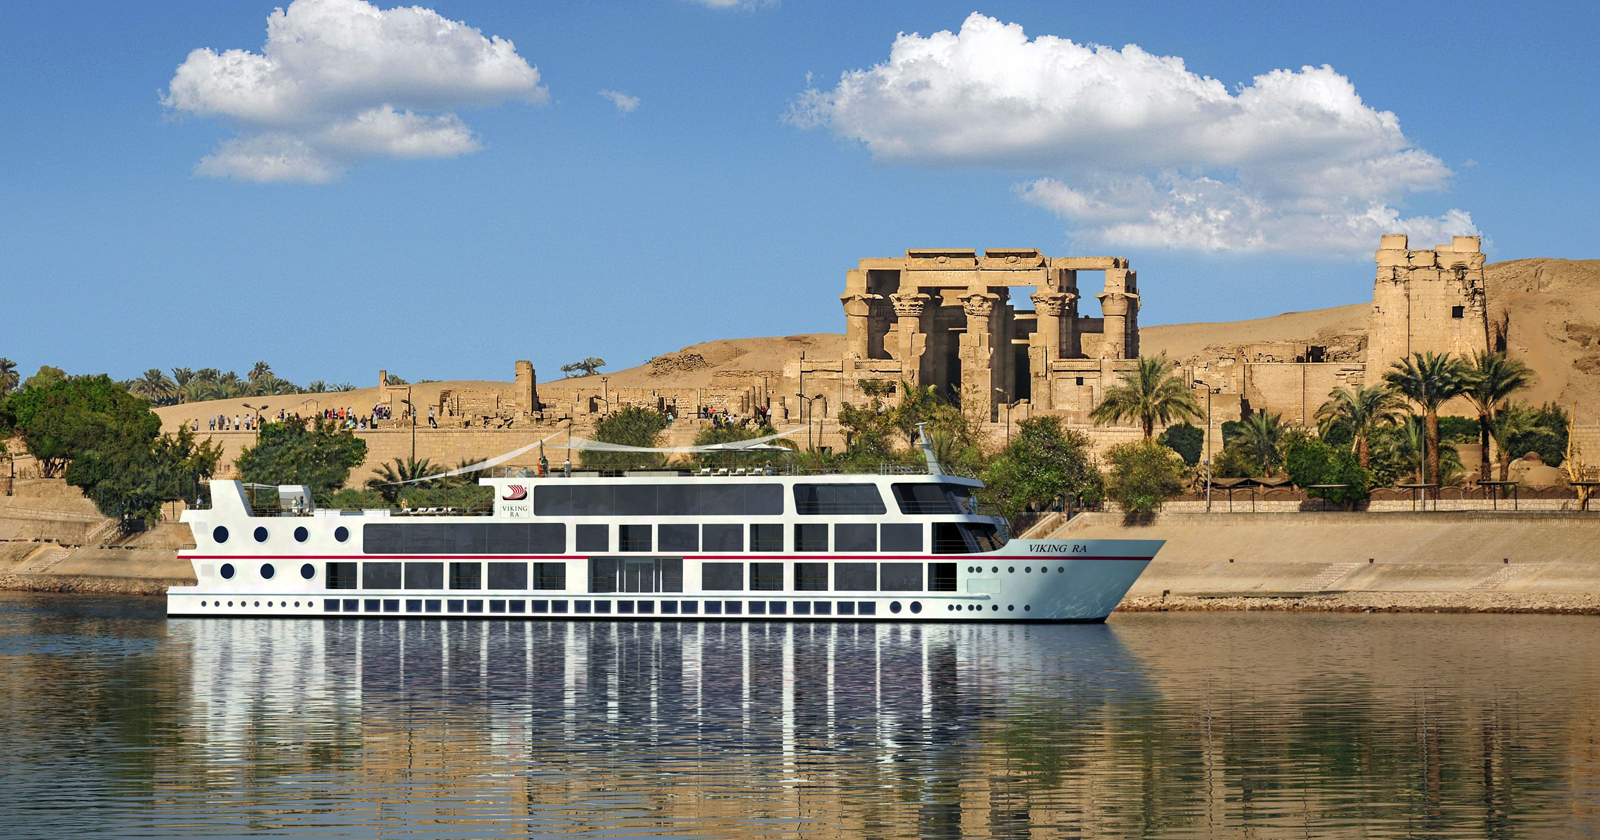 Nile cruise Deluxe ship in Kom Ombo